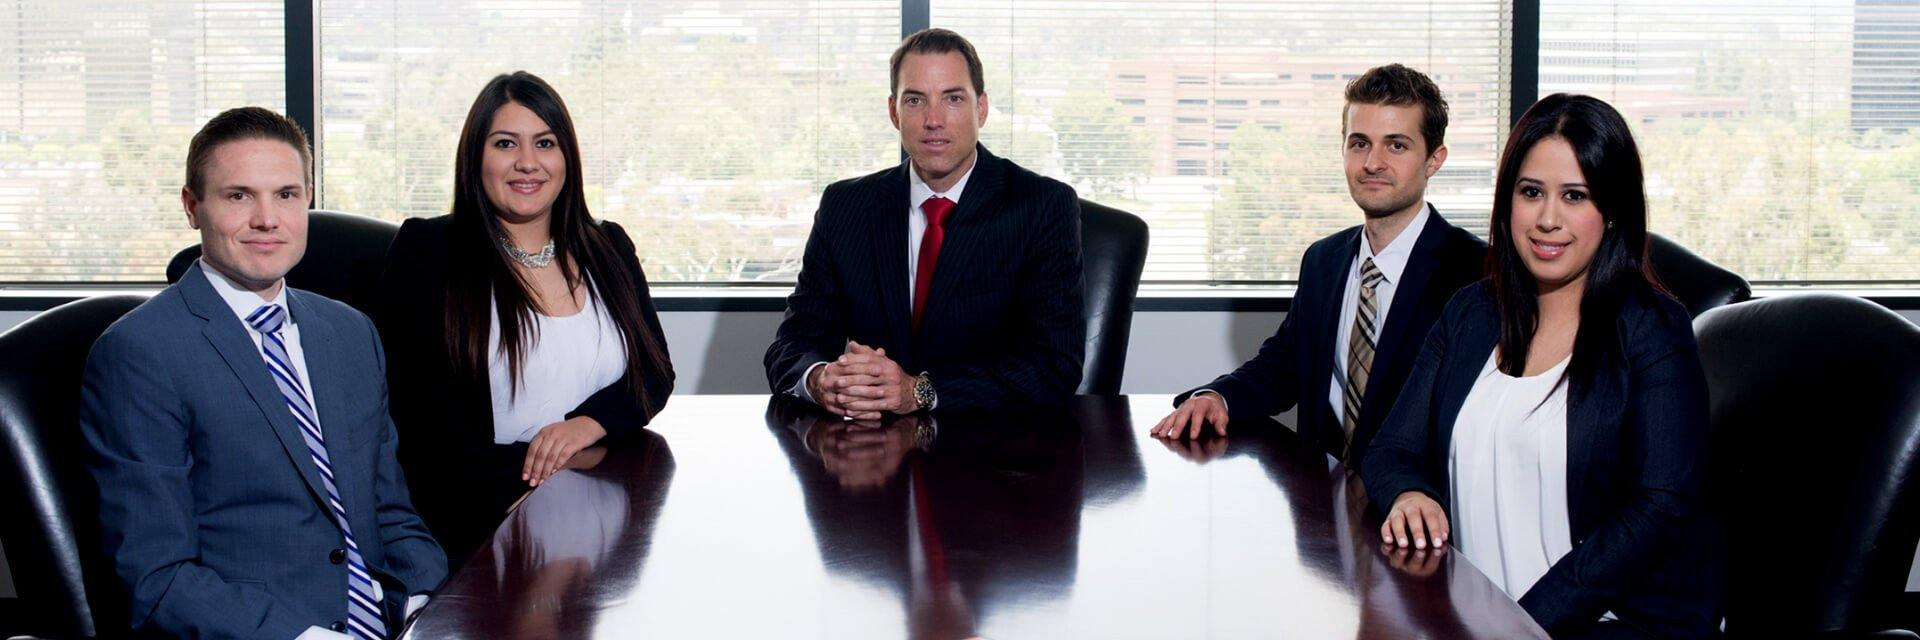 all-lawyers2